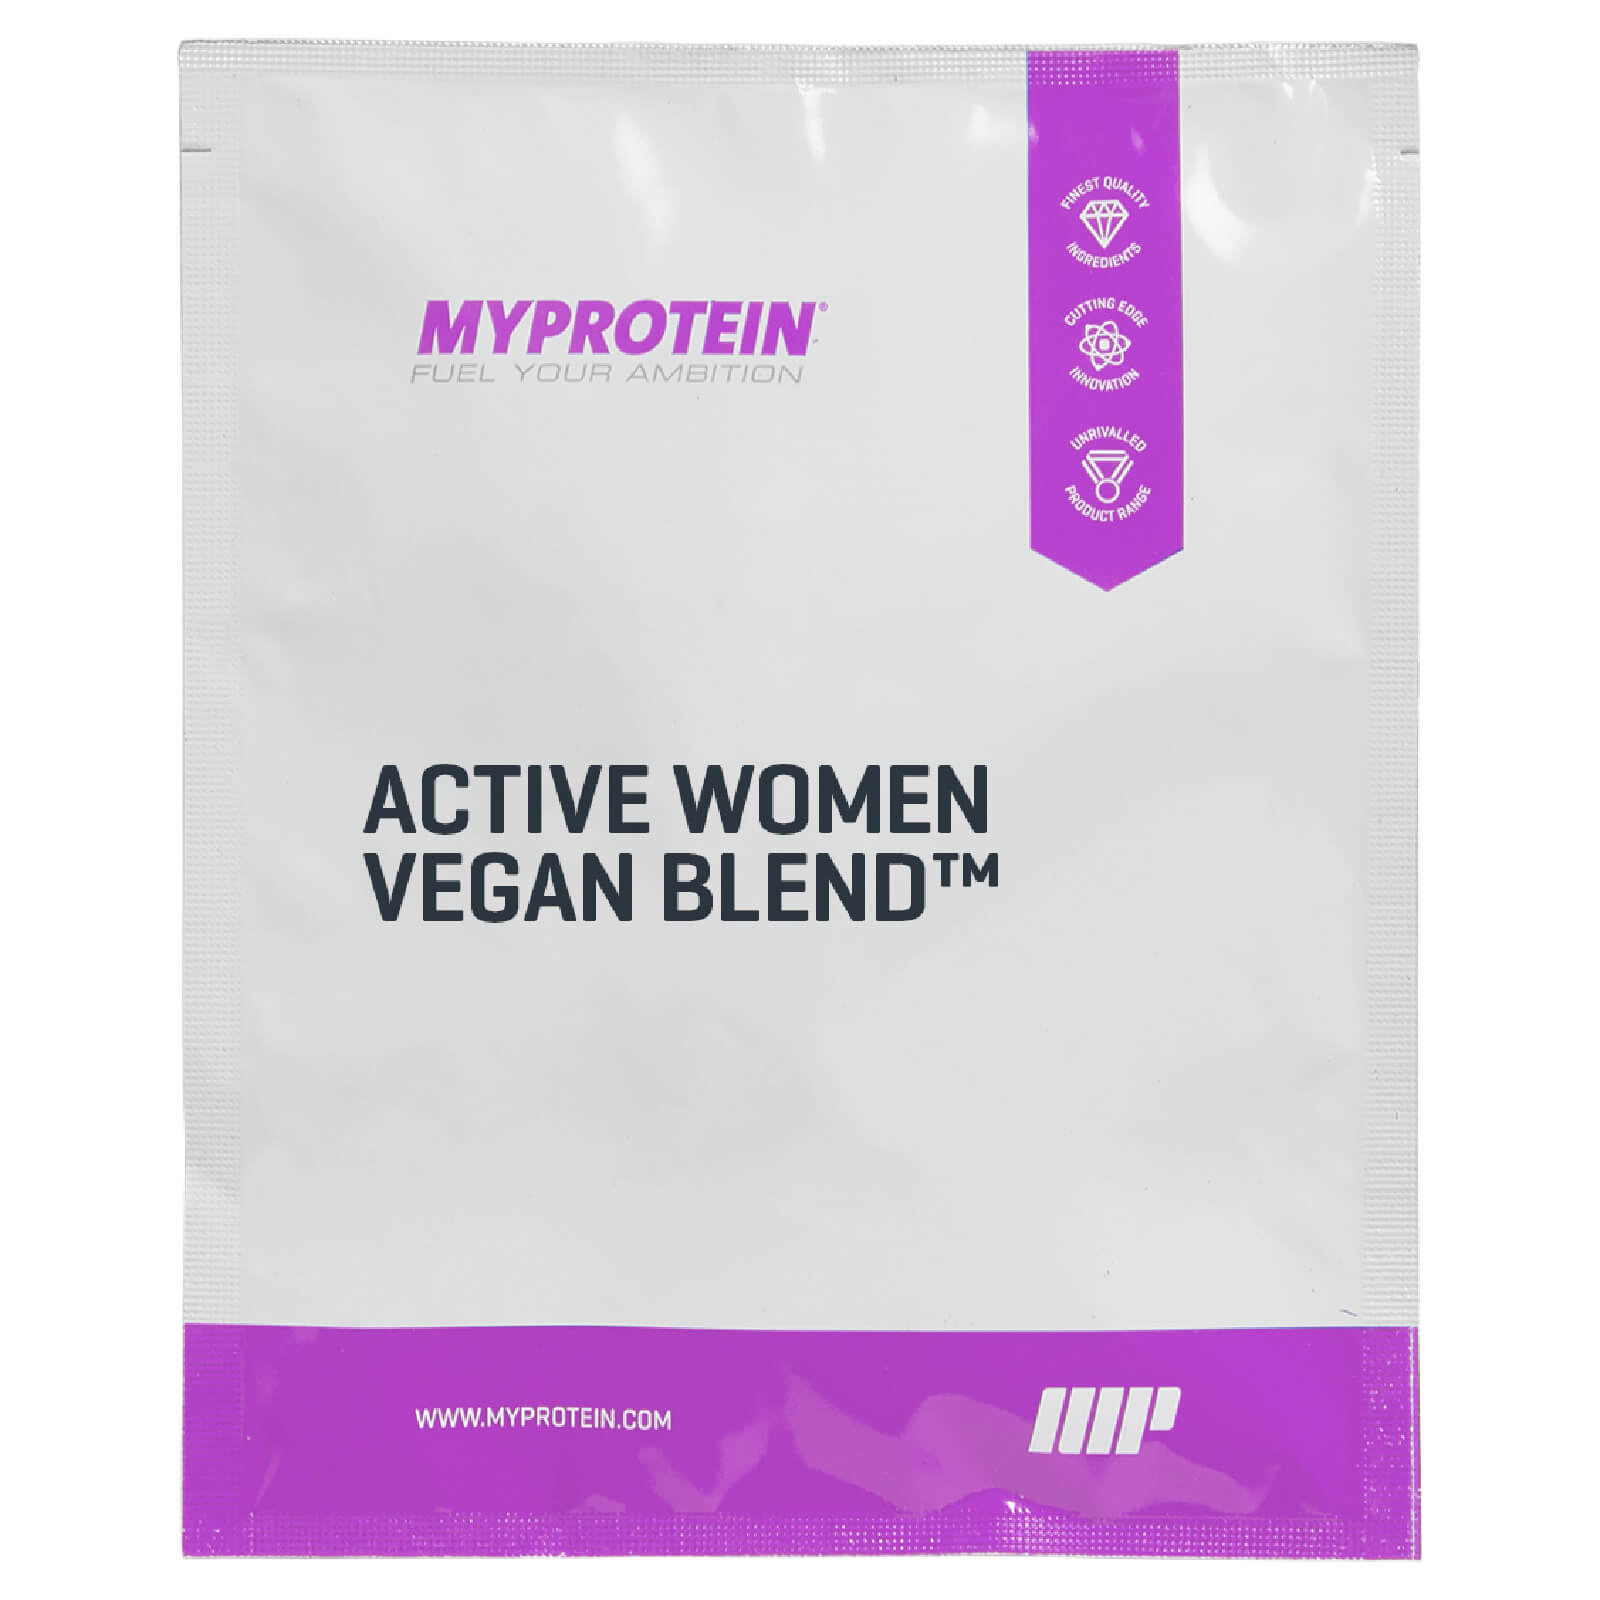 Active Woman Vegan Blend (Sample) - Pineapple & Coconut - 25g